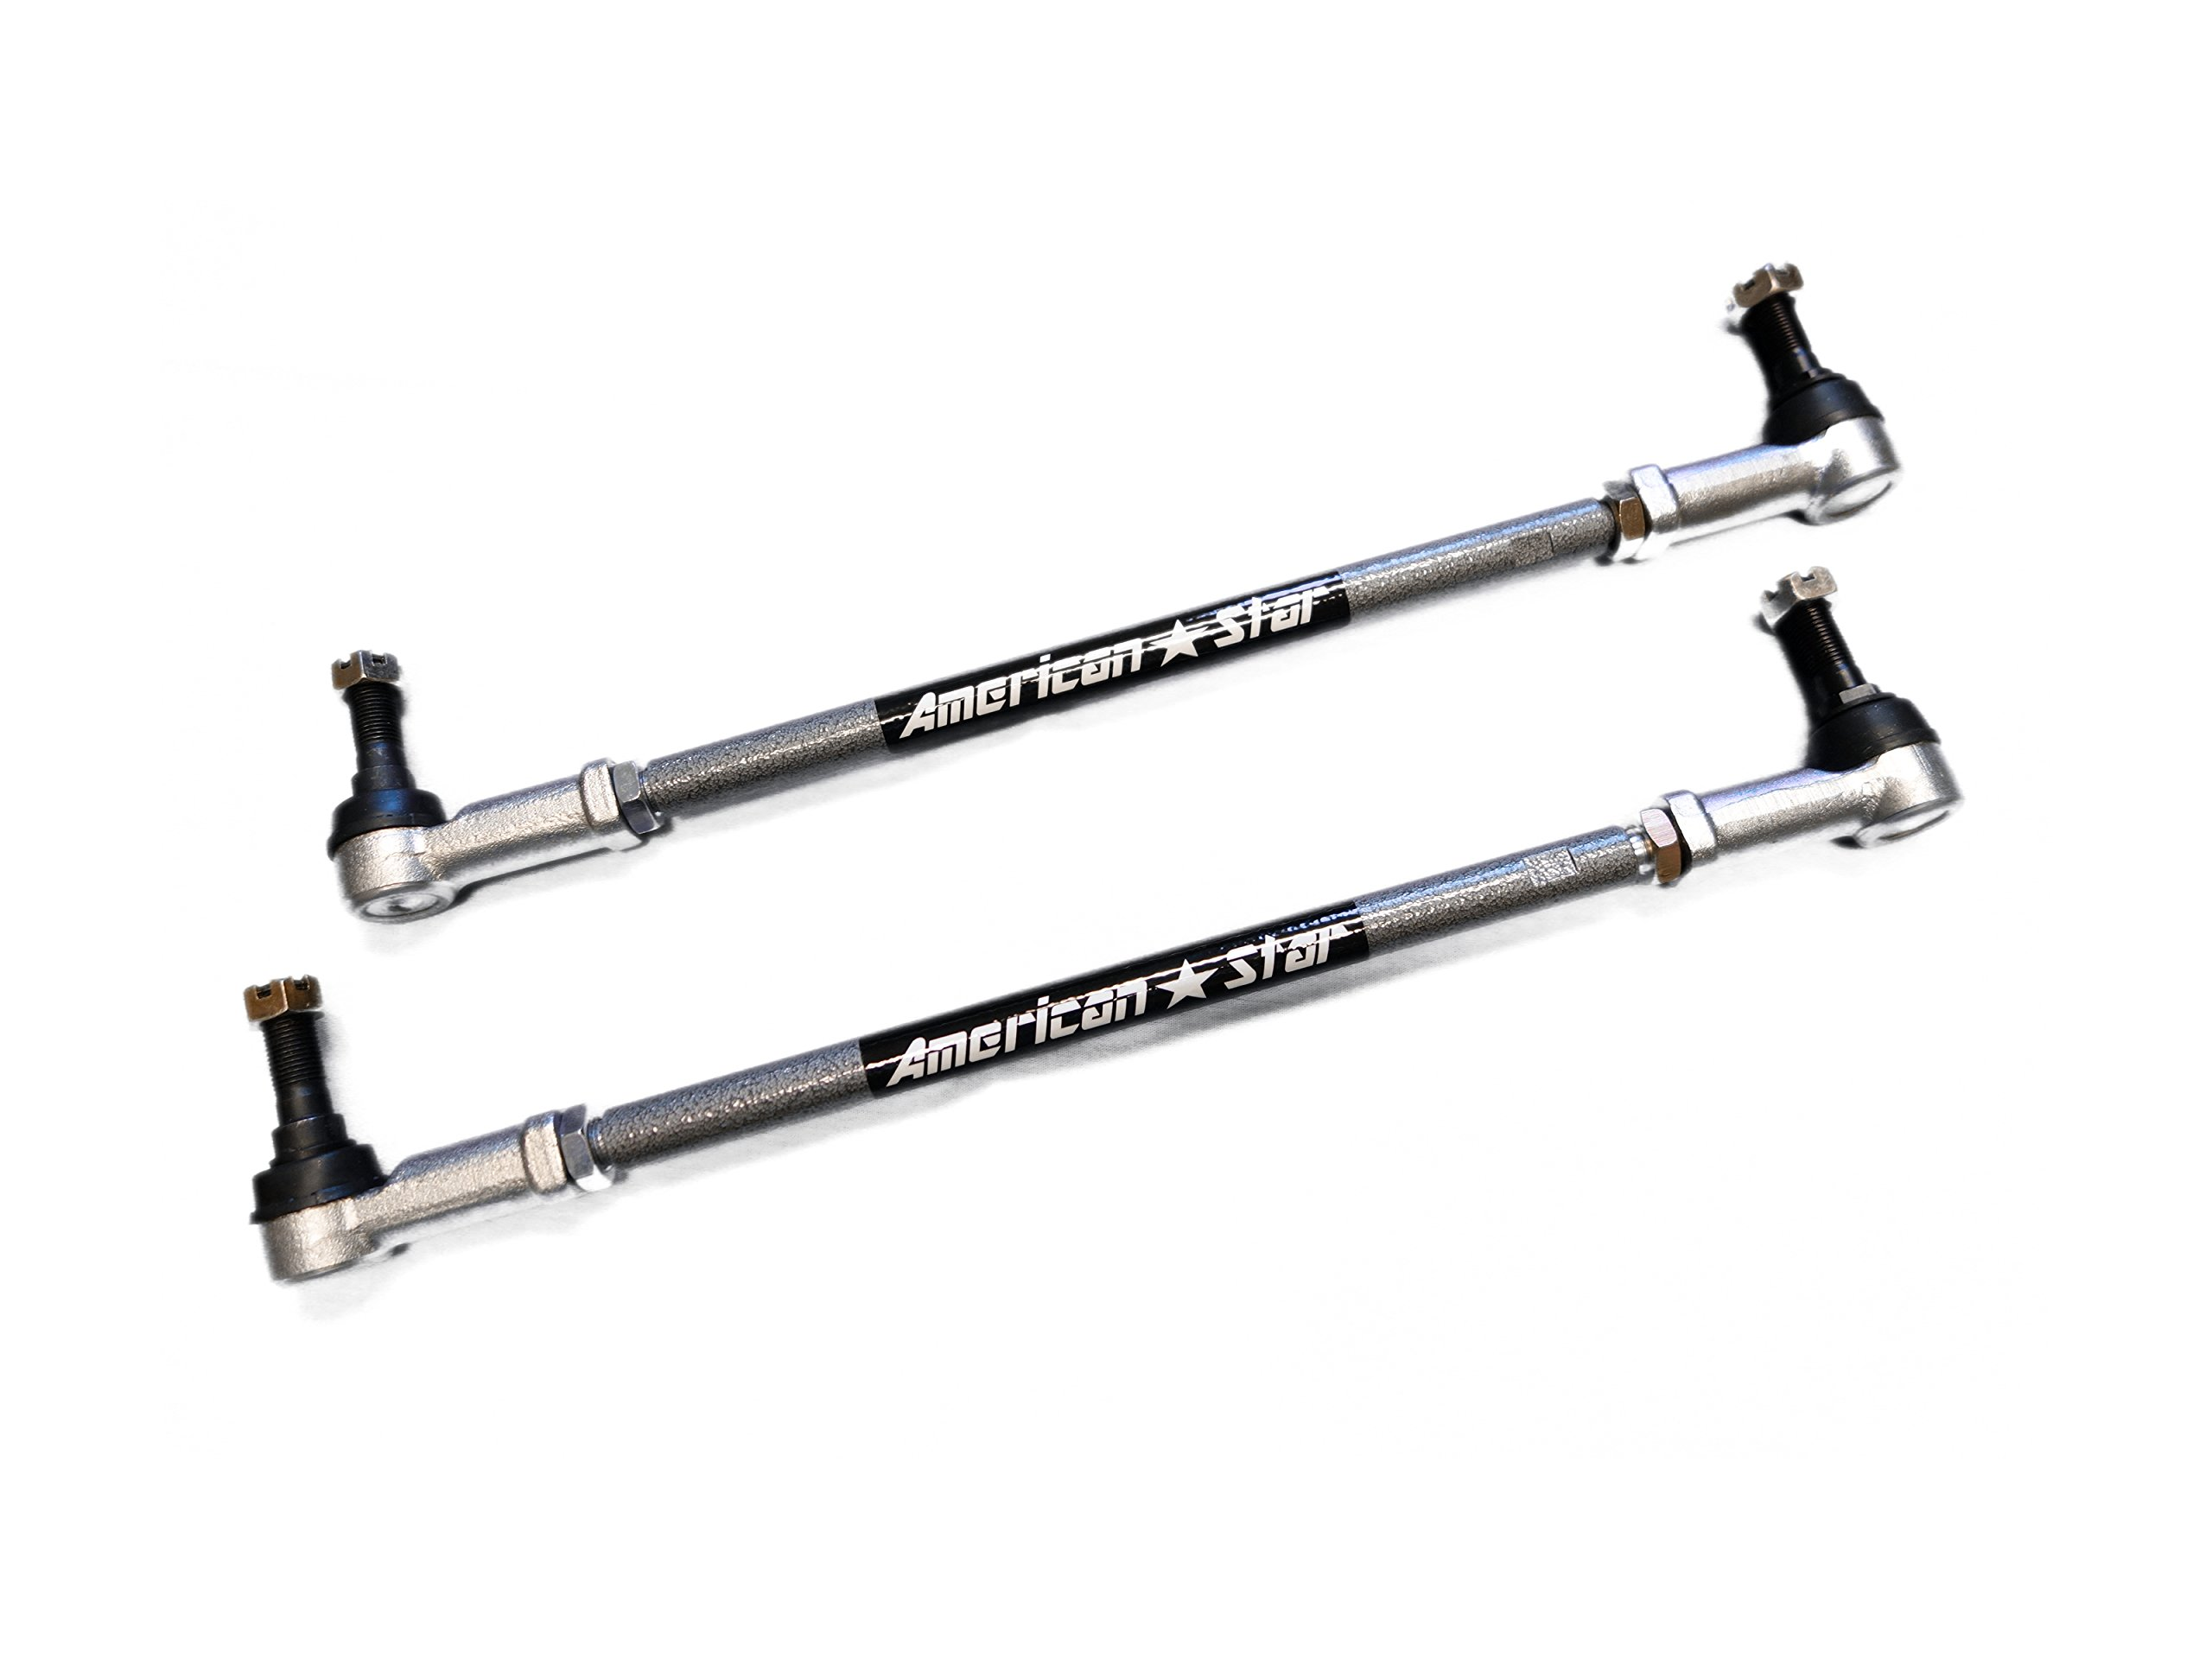 American Star 4130 Chromoly ATV Tie Rod Upgrade Kit For Can Am Outlander 1000 (up to 2018), Outlander 800R/Max 800R 12-18, Renegade 800 up to 2018, John Deer Trail Buck All Years/Models